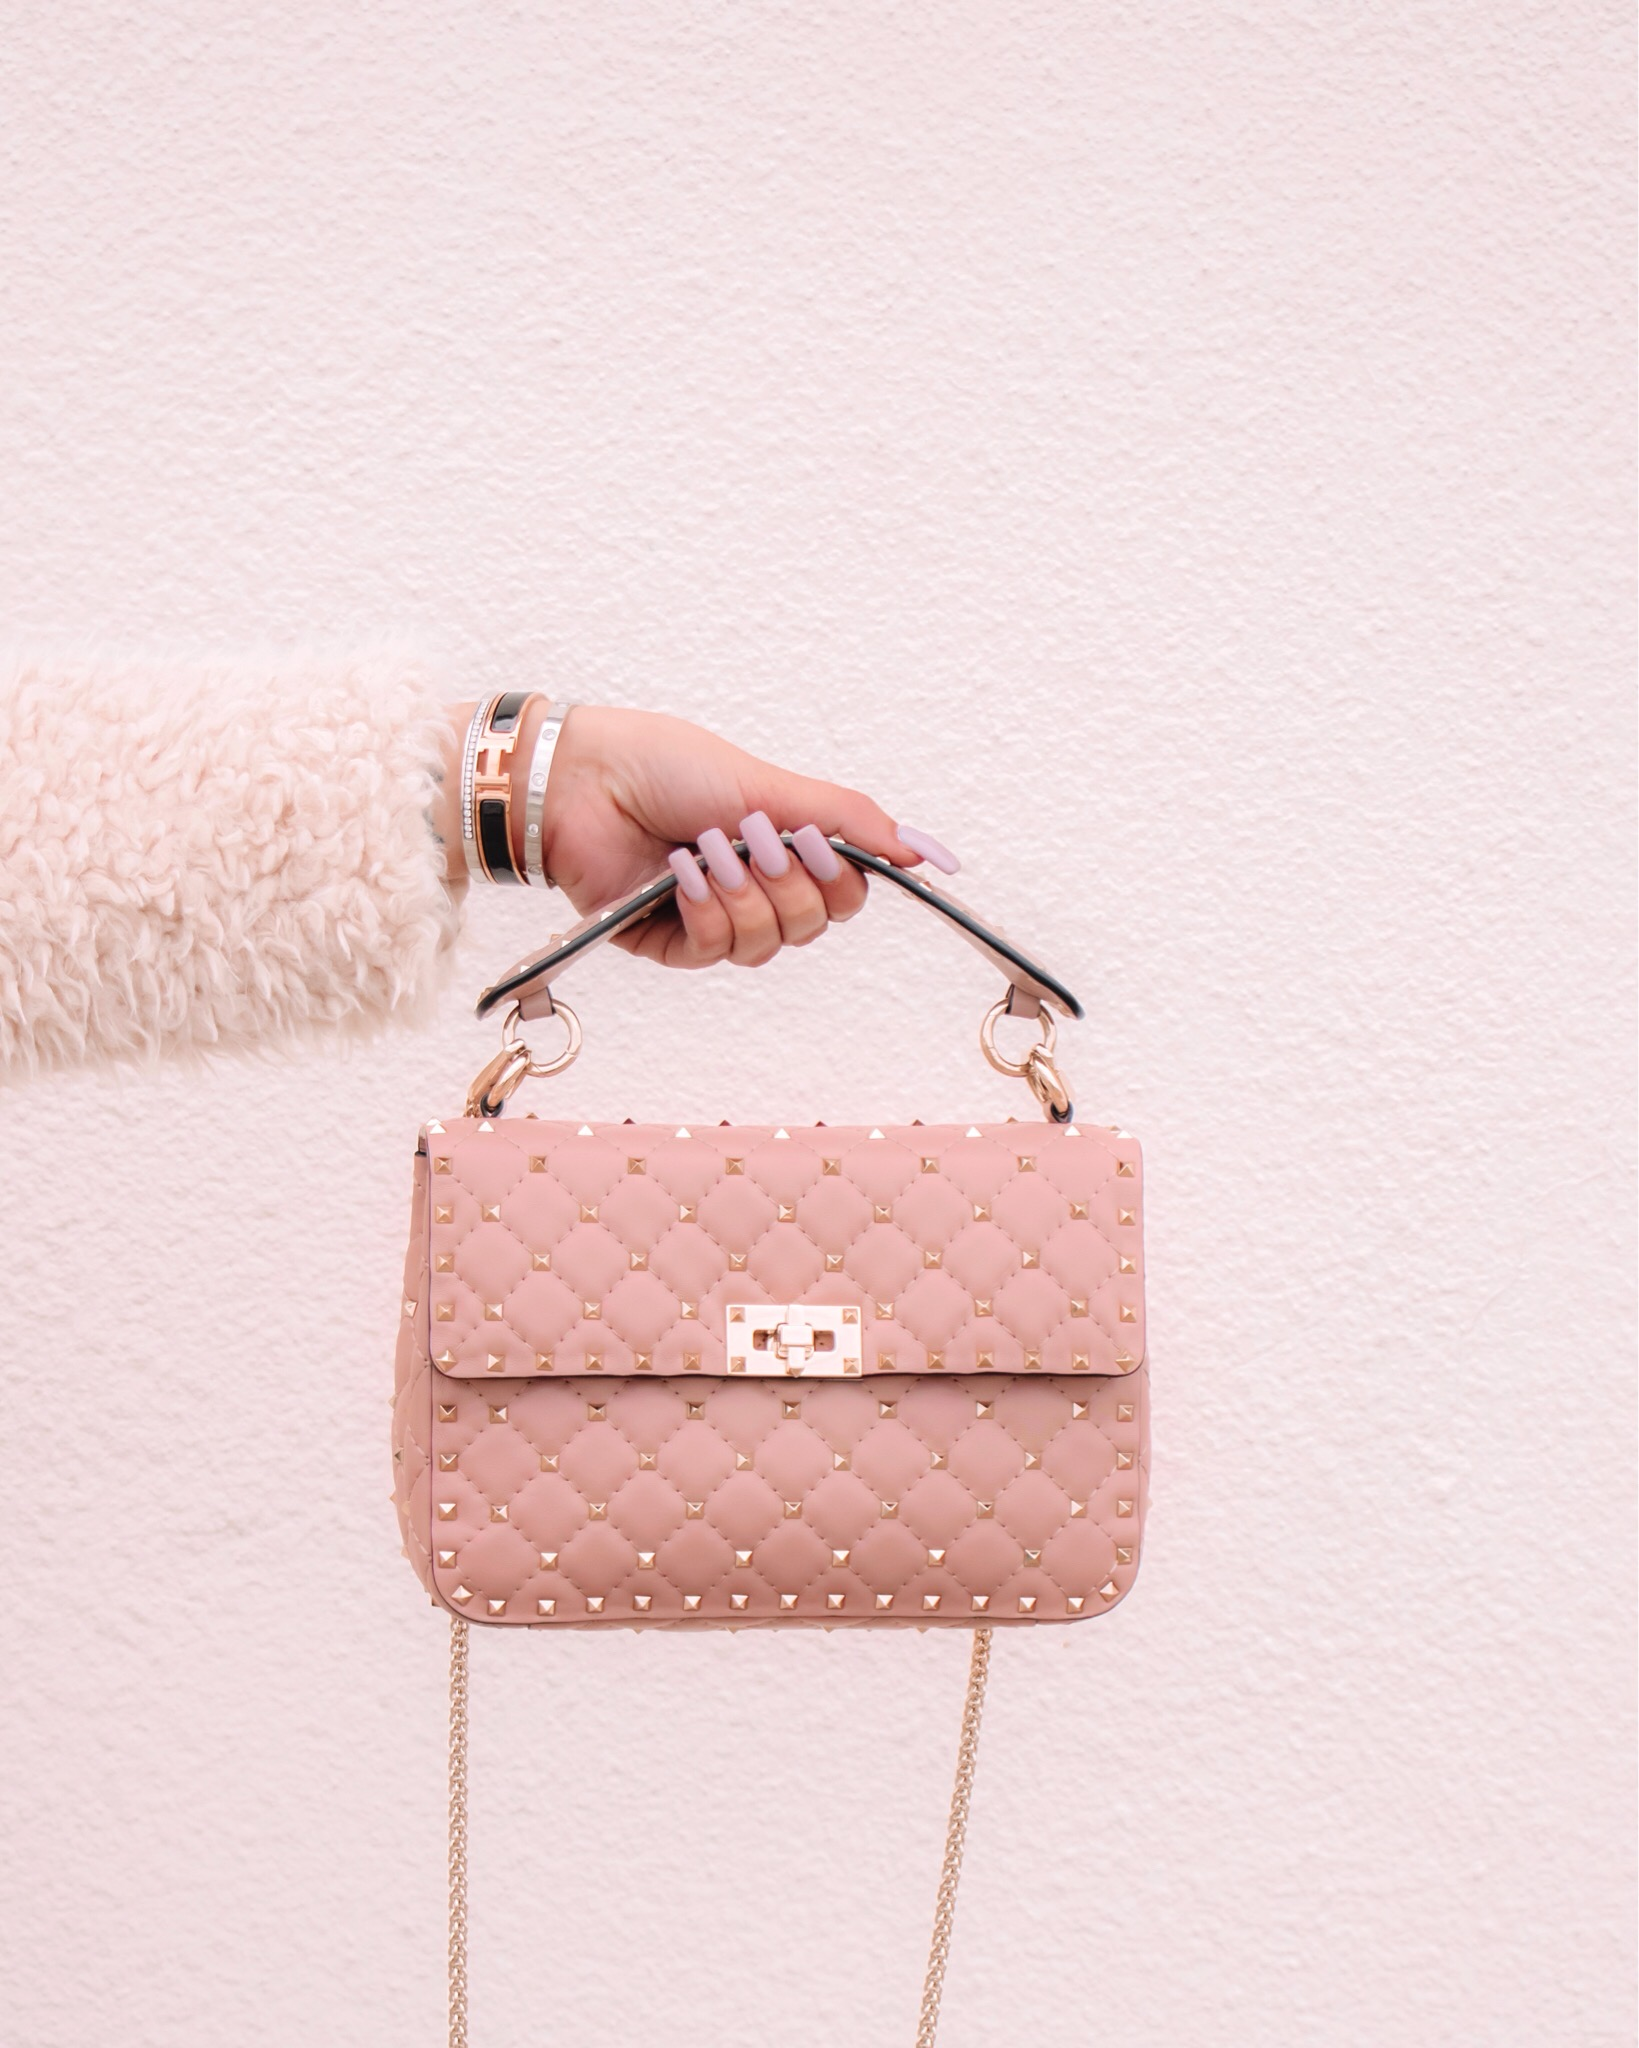 ALL ABOUT MY DESIGNER BAGS!